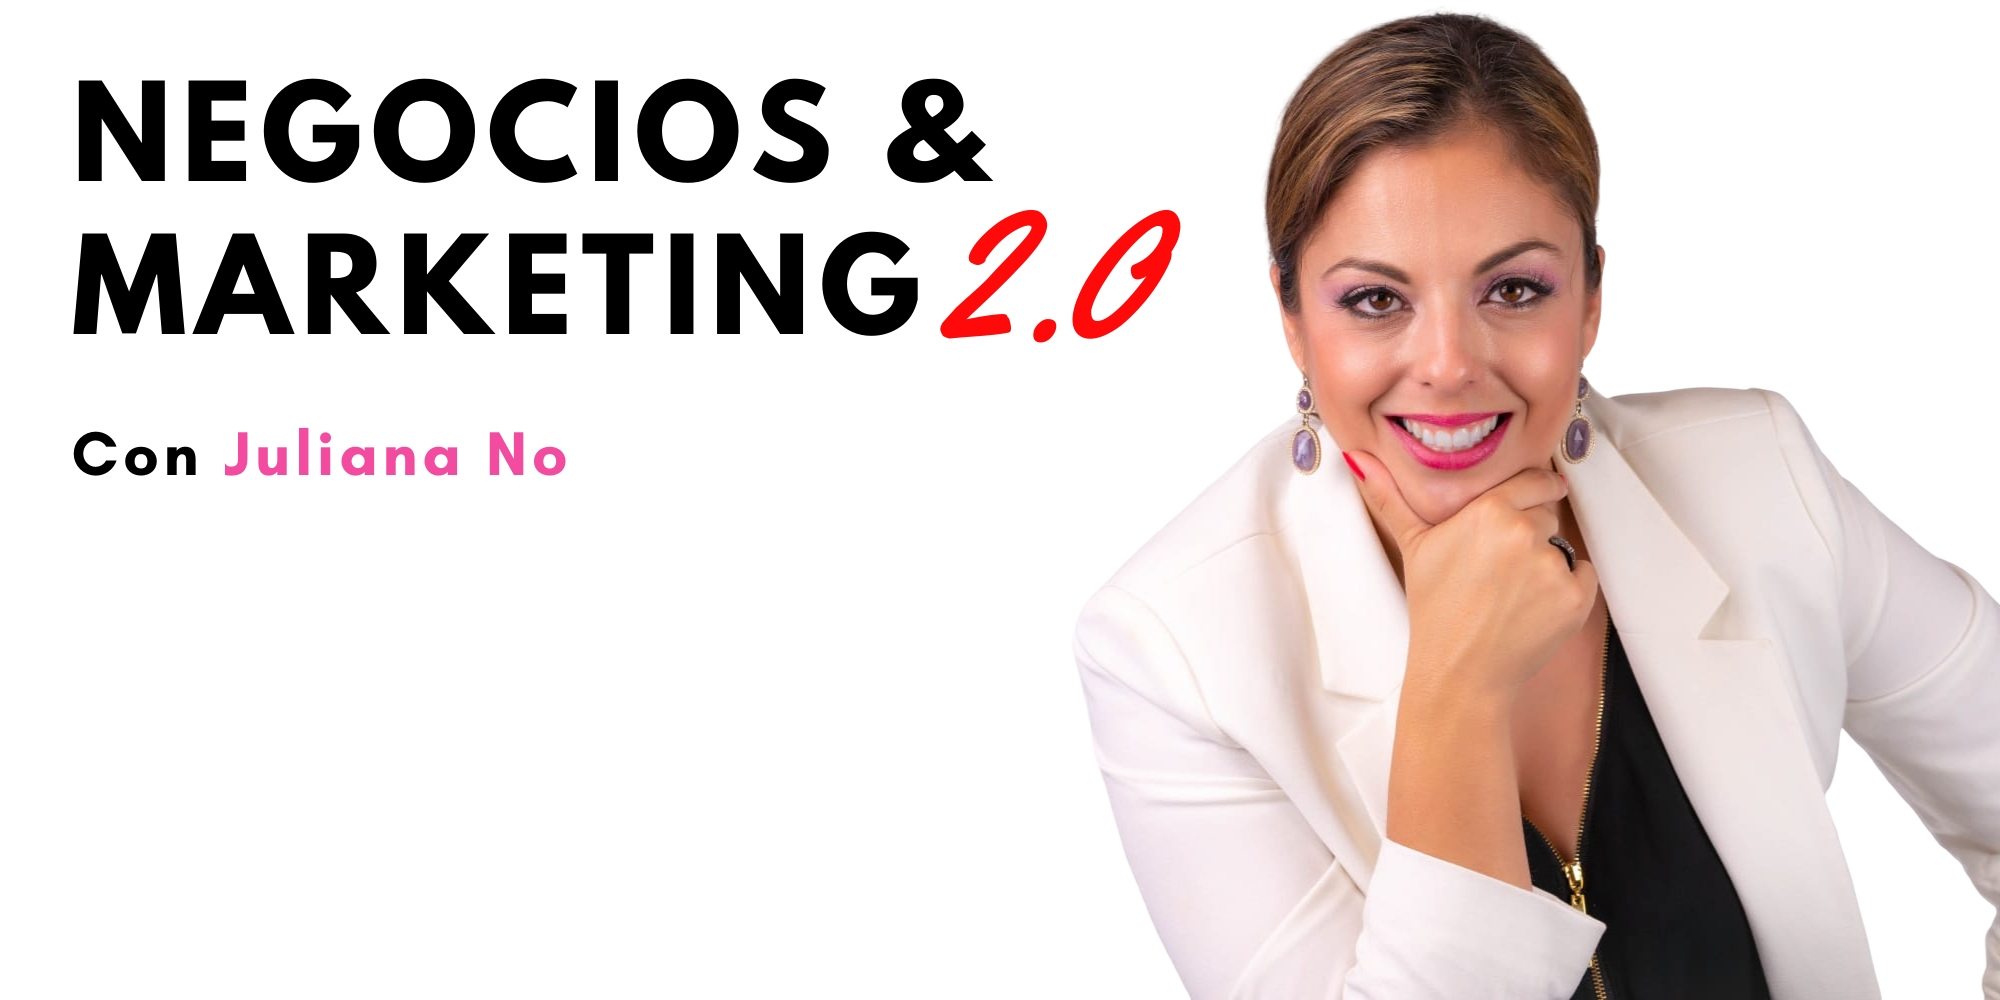 Negocios y Marketing en Orlando